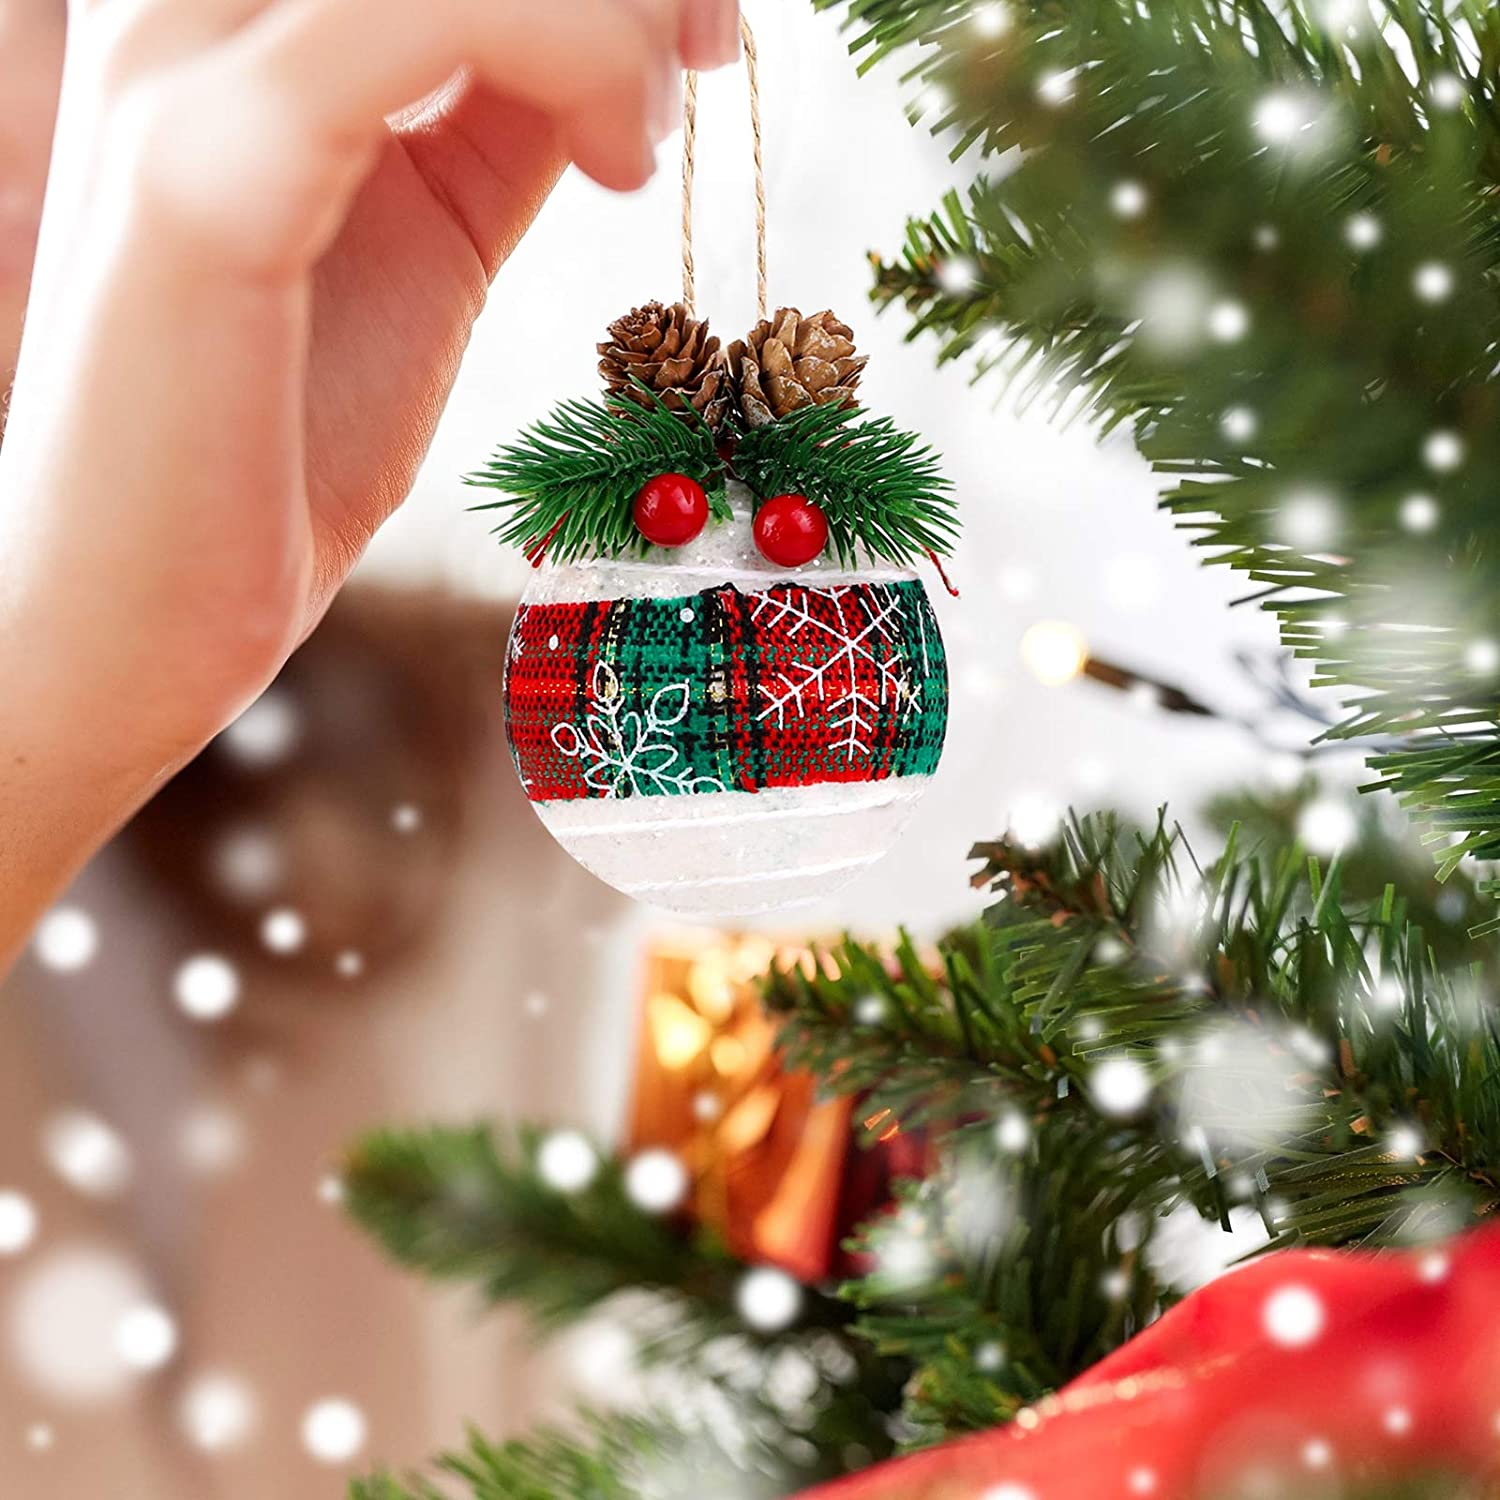 Assorted Styles URATOT 6 Pack Christmas Ball Ornaments Rustic Christmas Tree Hanging Baubles Decorations with Pine Cones and Berries for Christmas Holiday Decorations